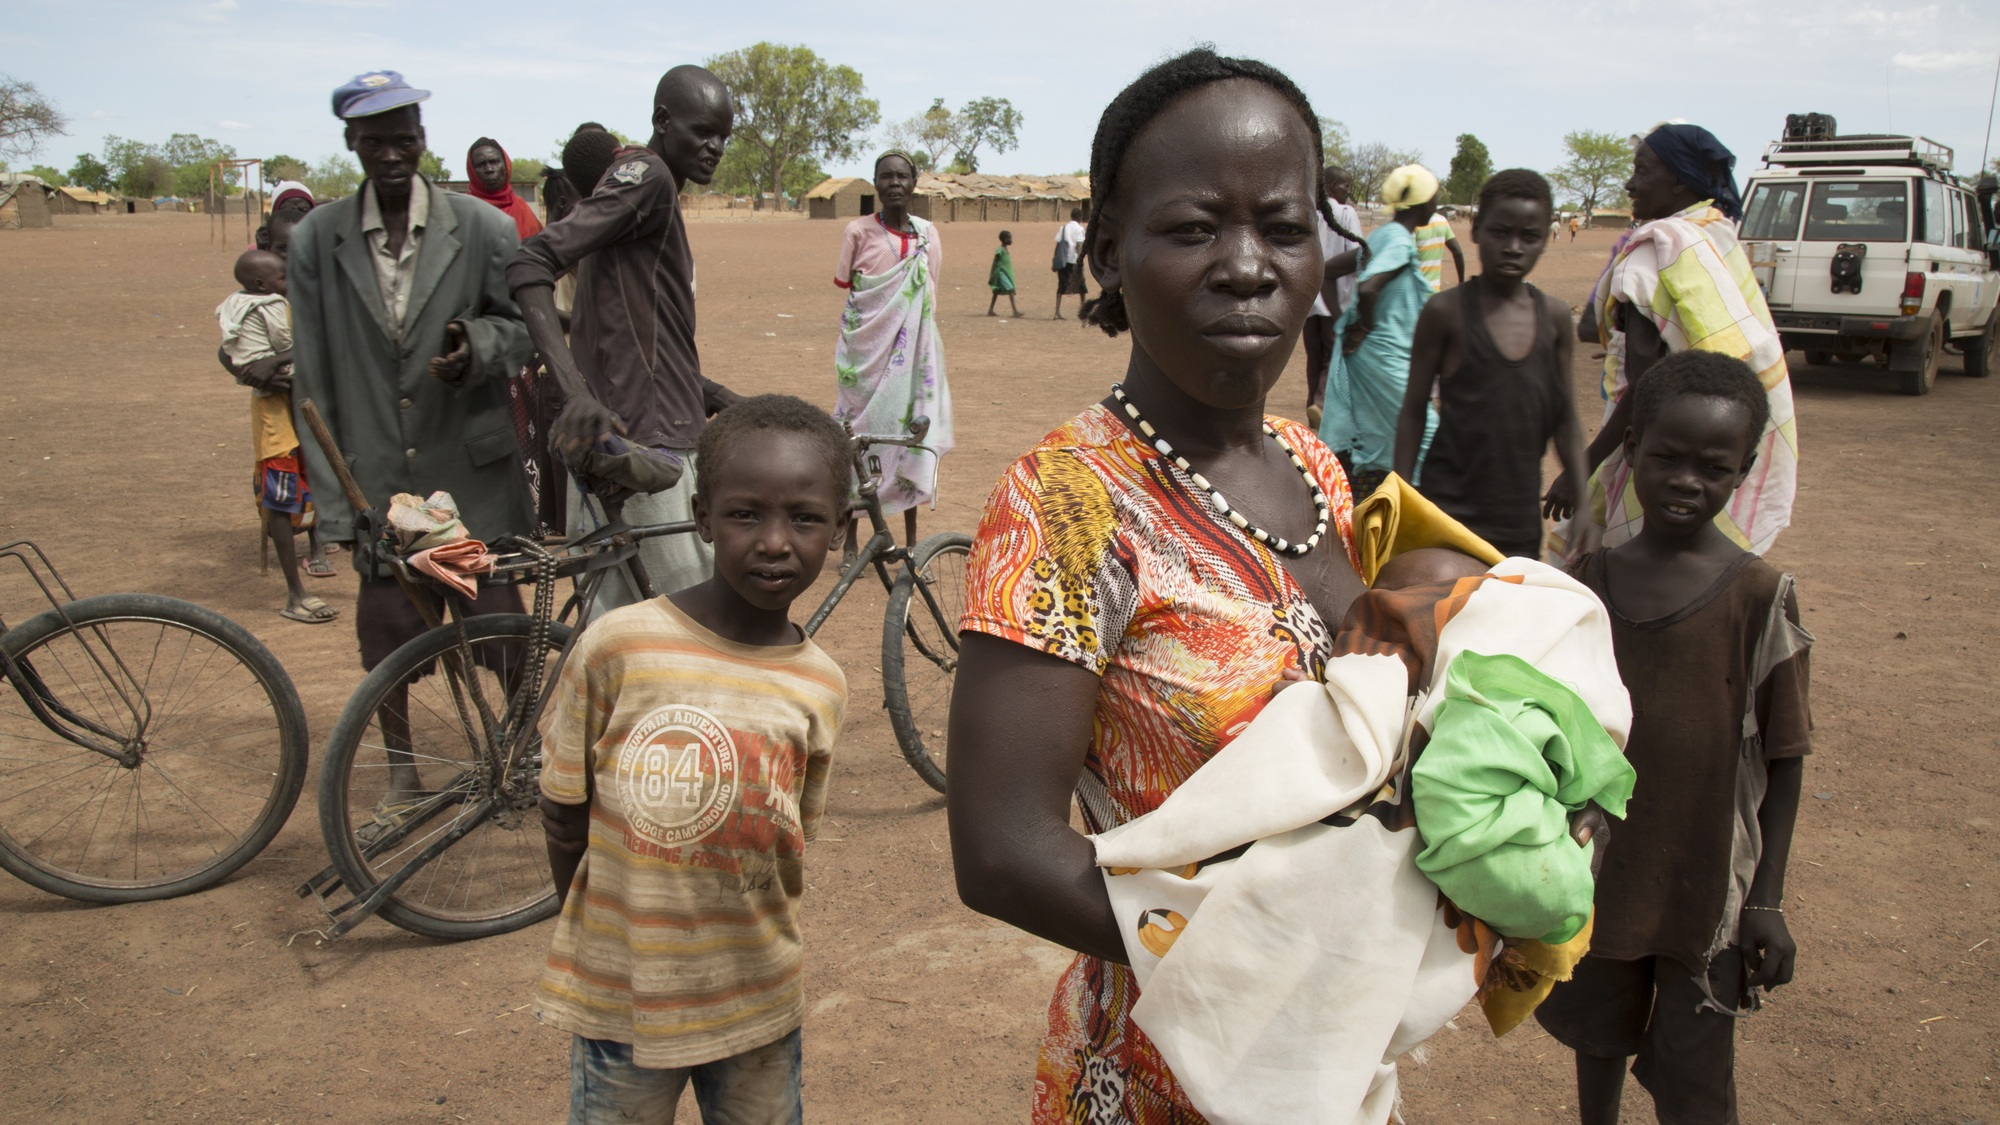 A woman holds a bundled baby in her arms and looks at the camera, other people and their bikes stand behind her